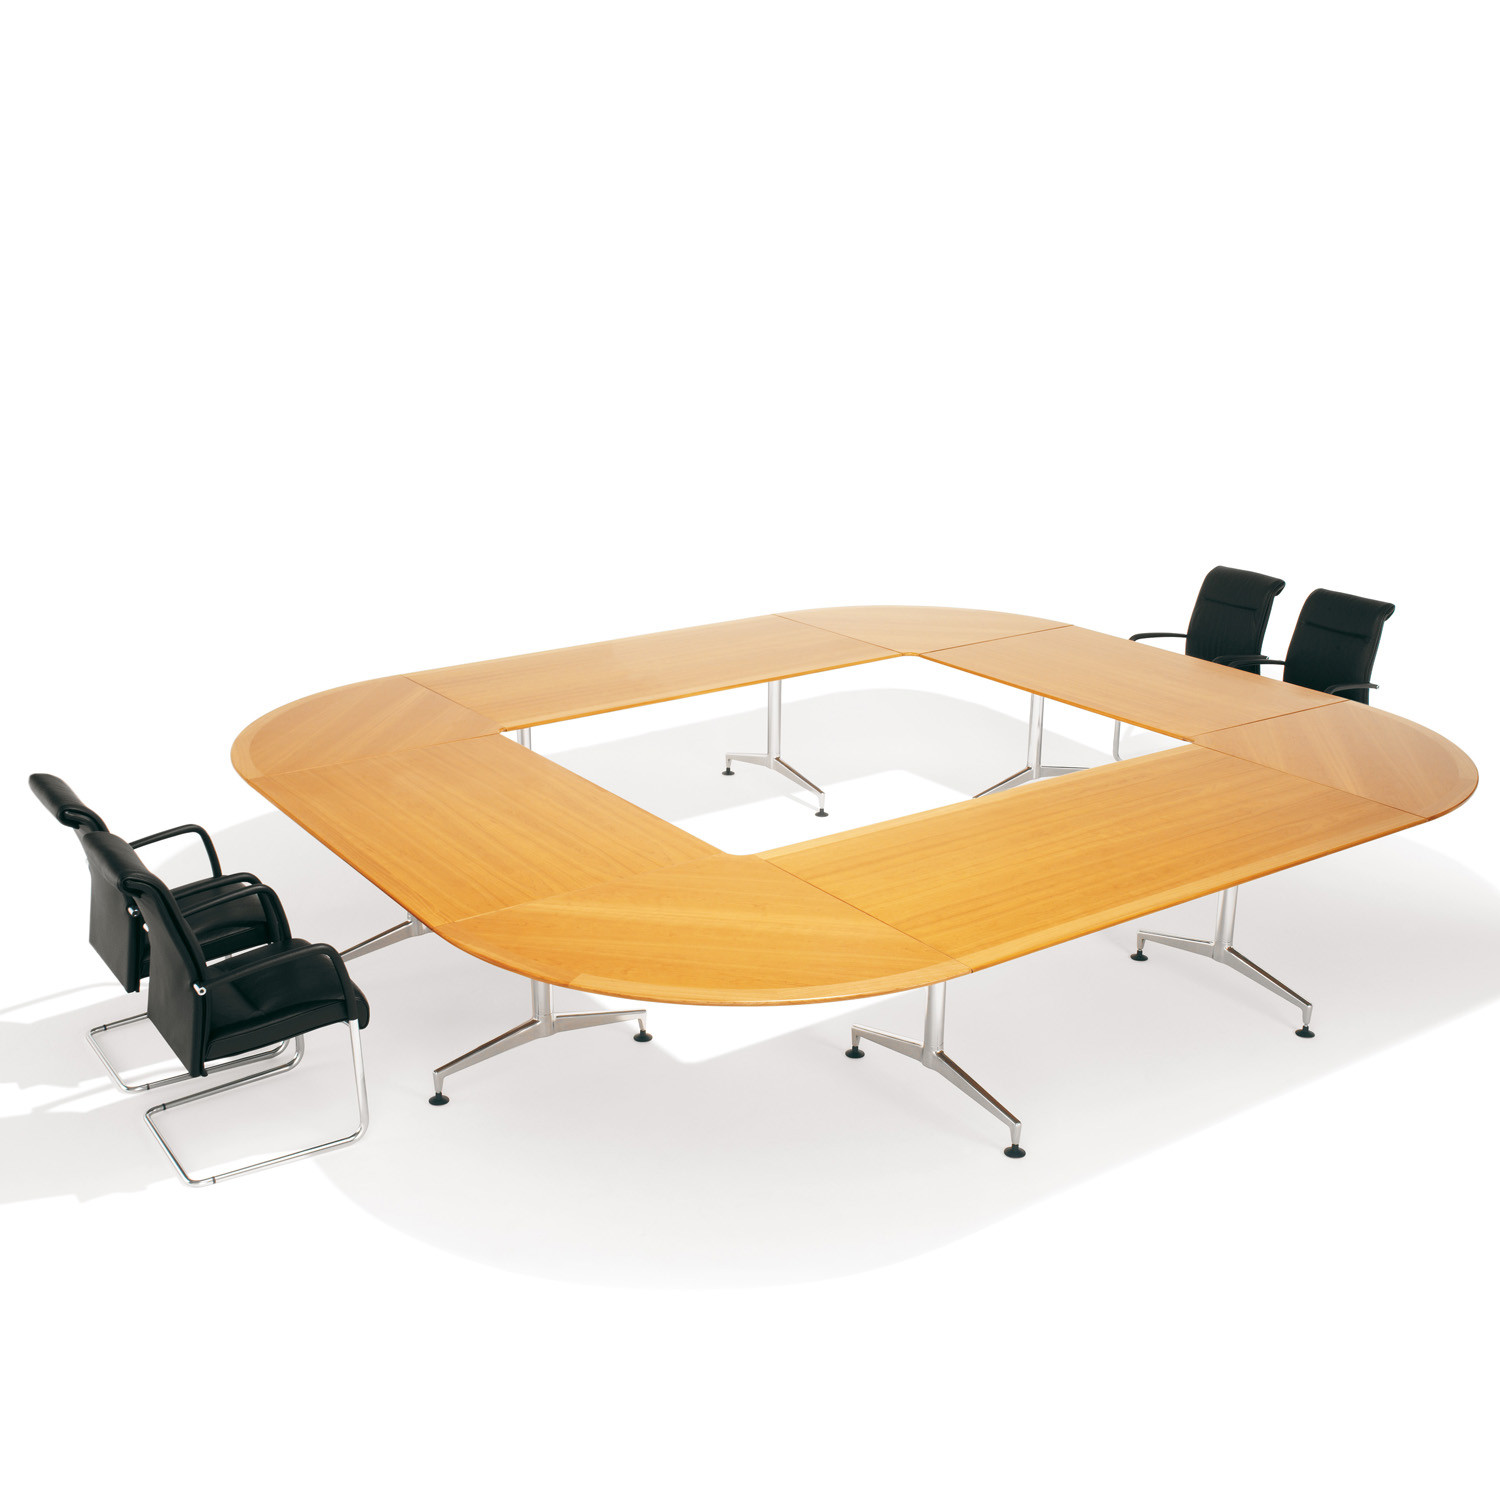 8400 Ona Modular Conference Table